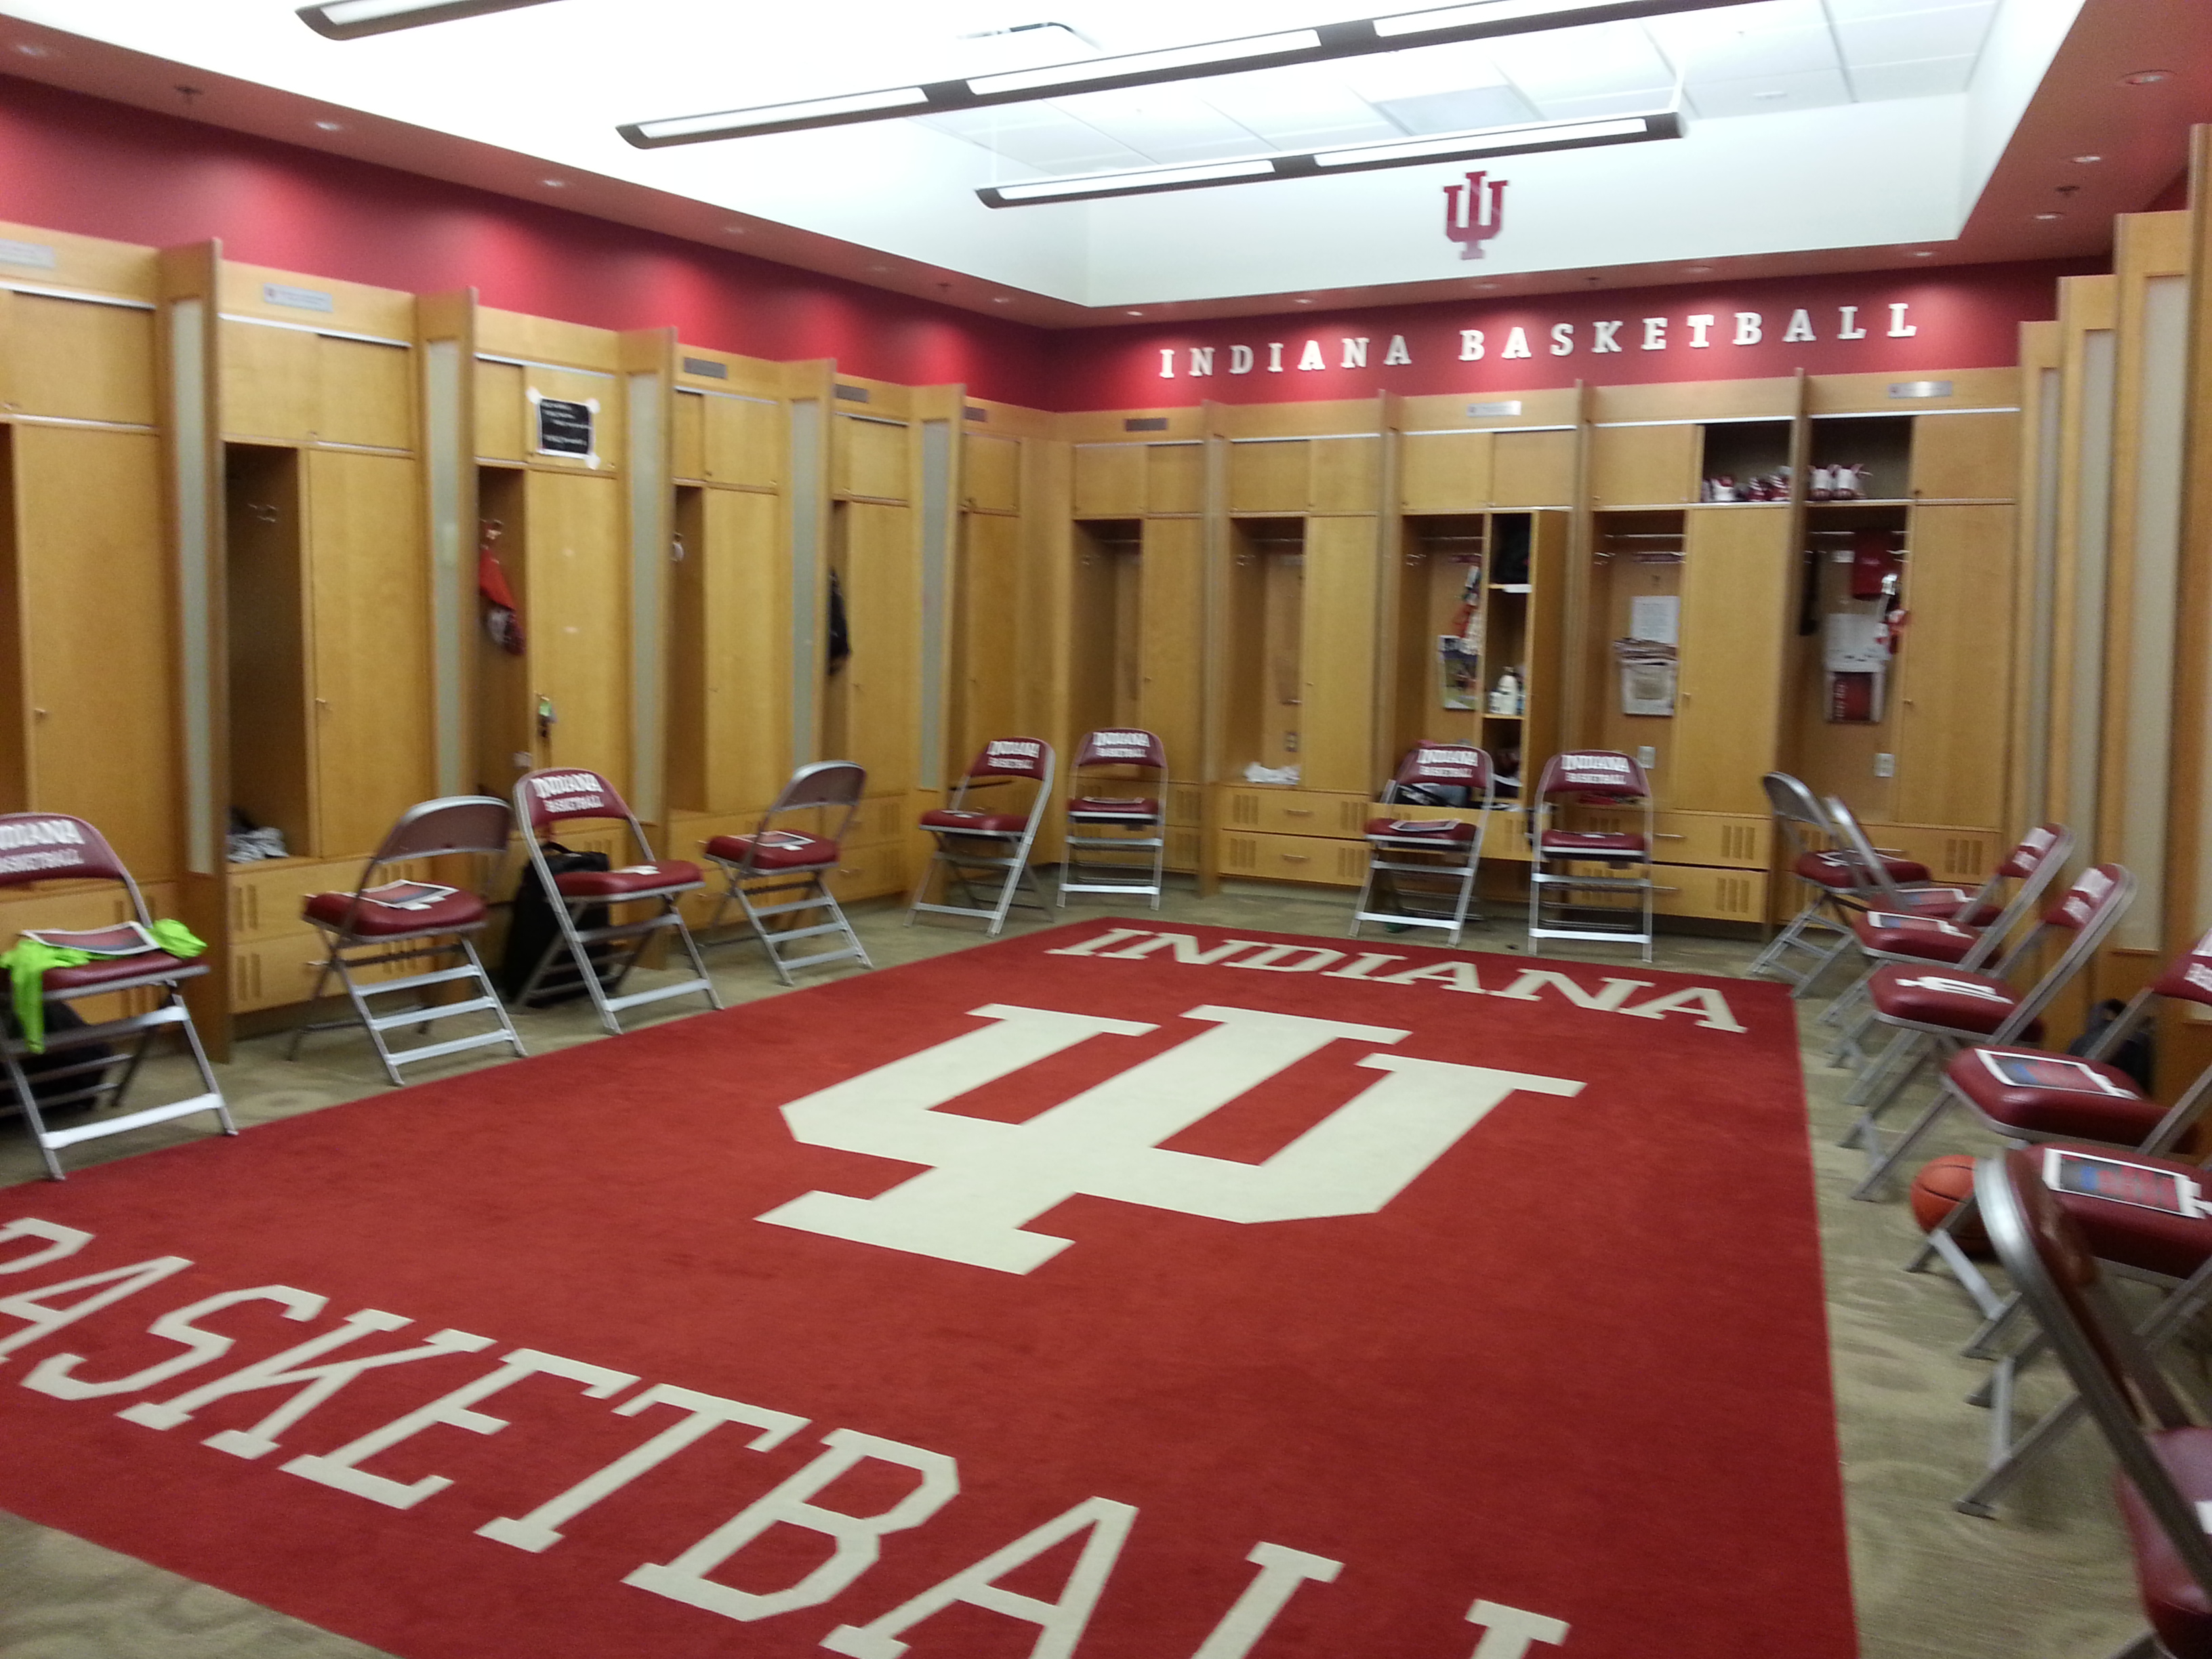 Indiana Basketball Changeroom